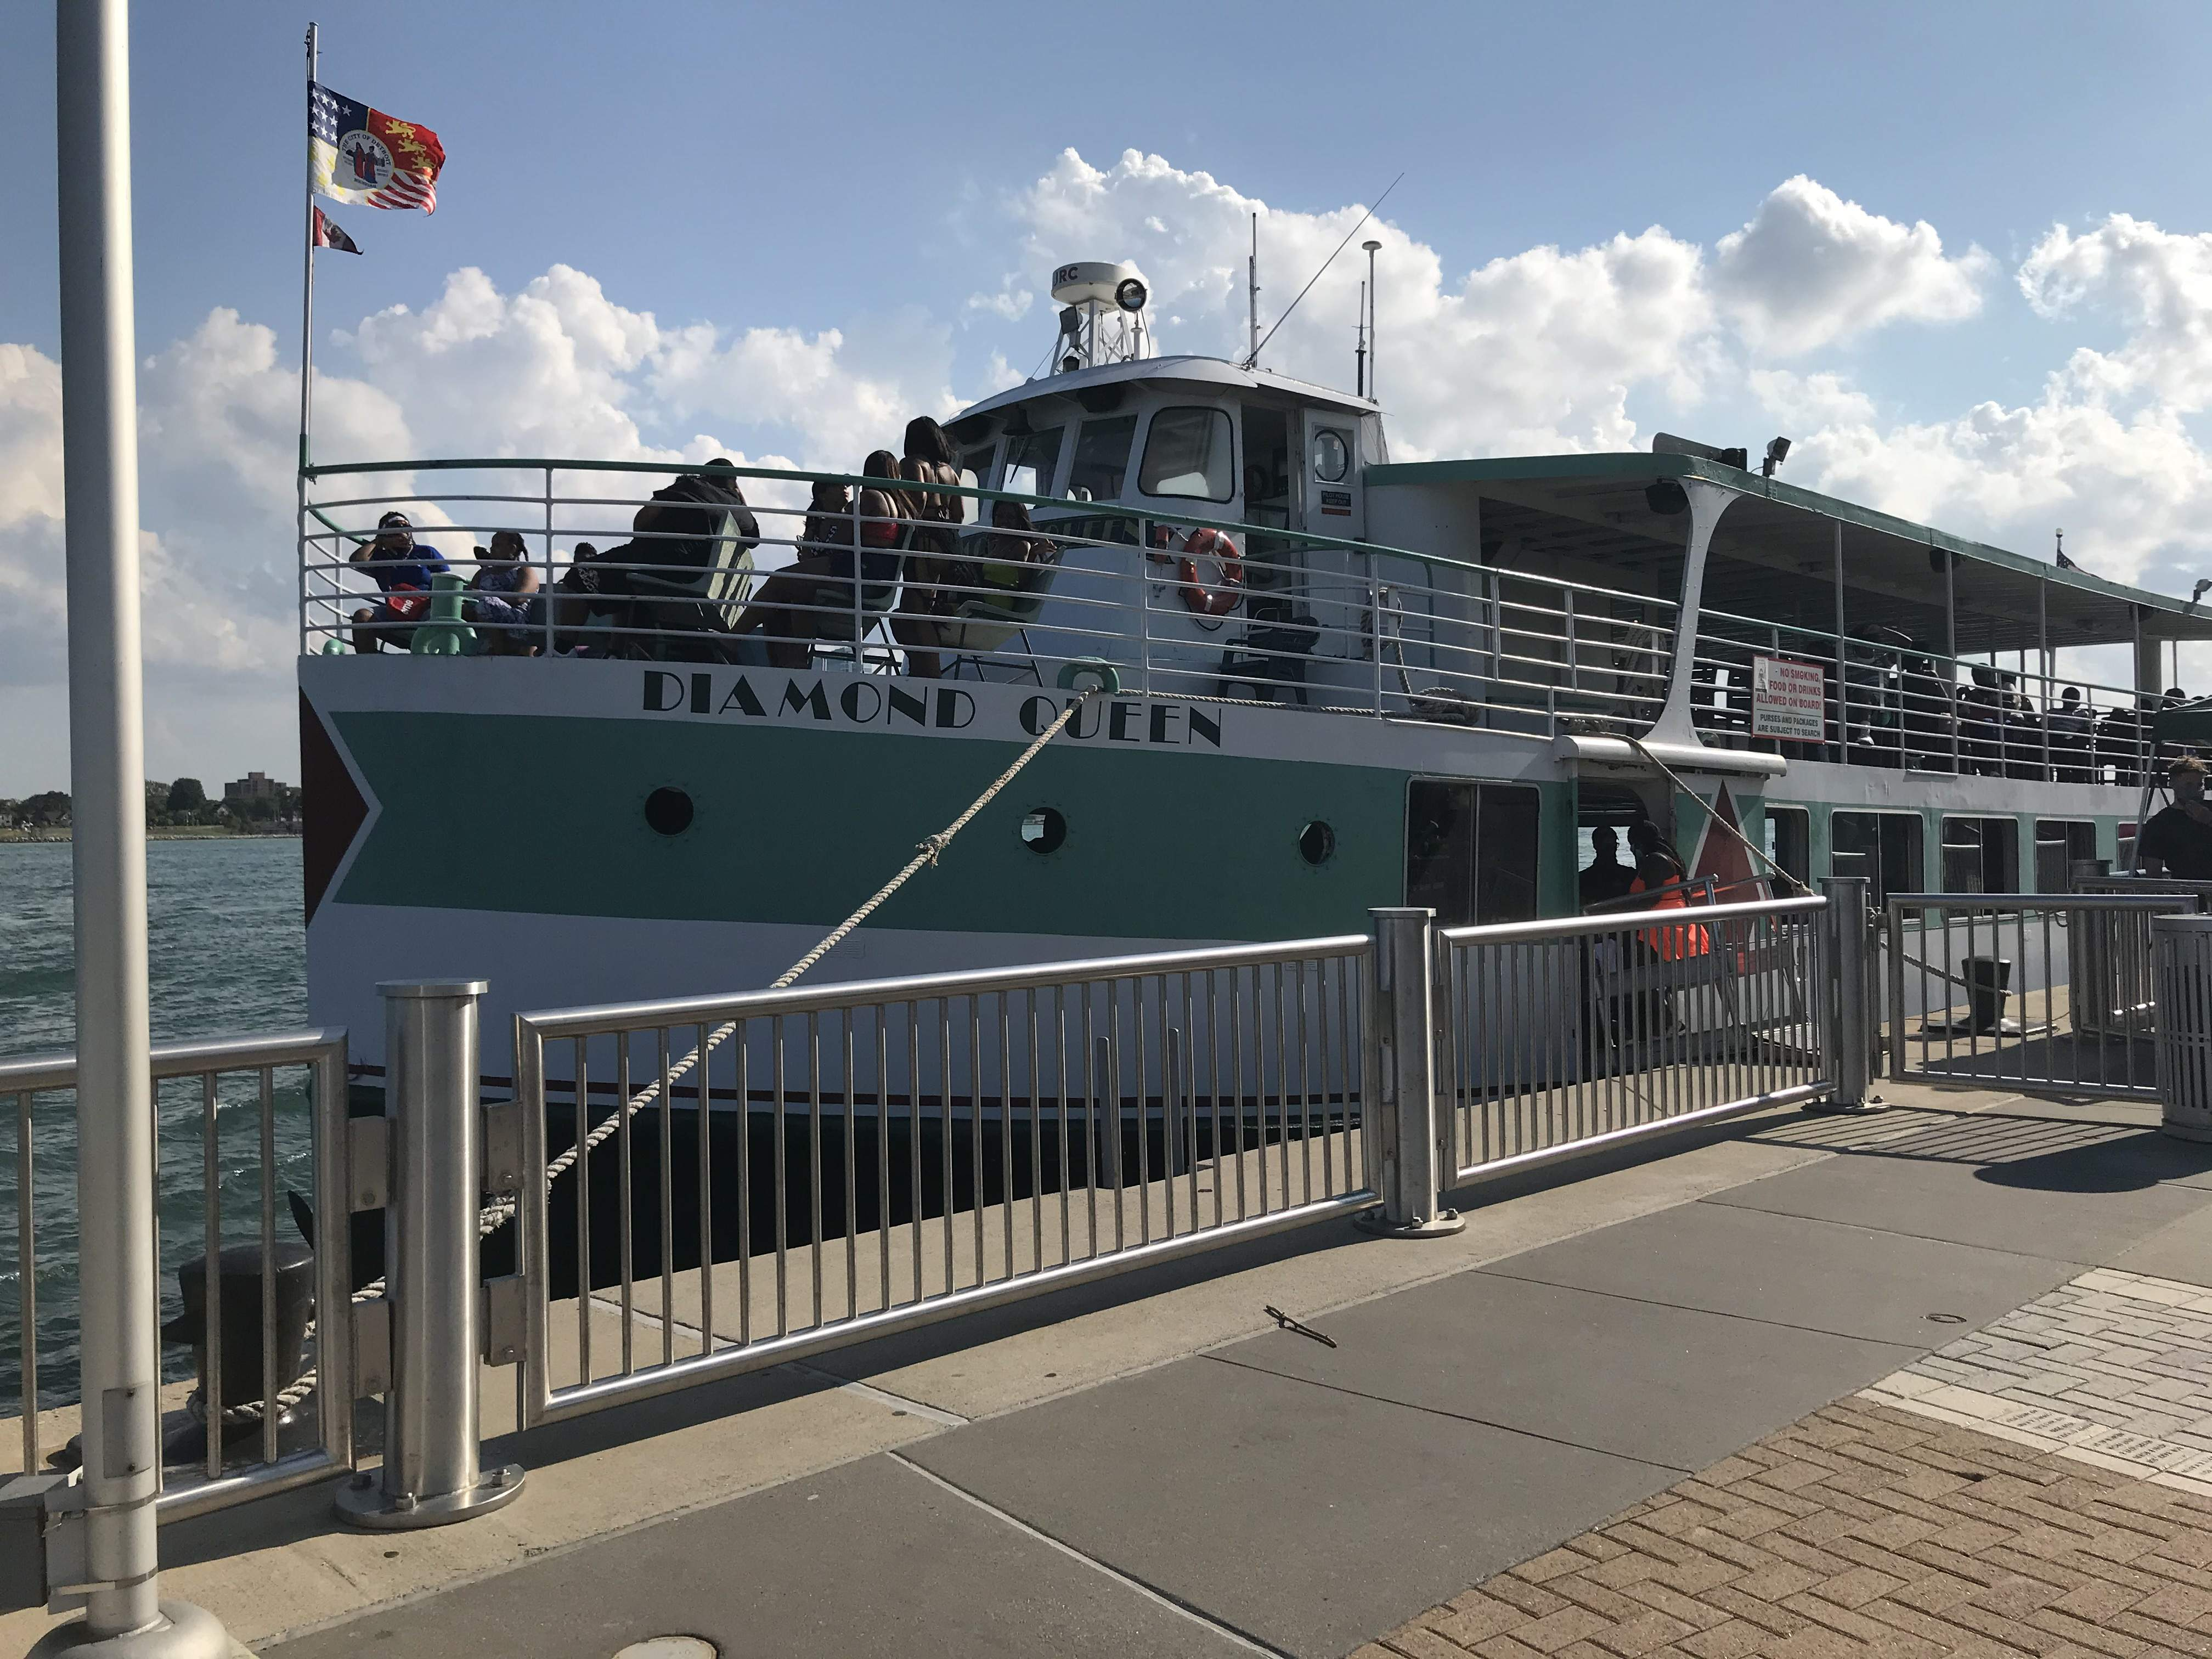 Passengers board the Diamond Queen at Cullen Plaza on the Detroit River